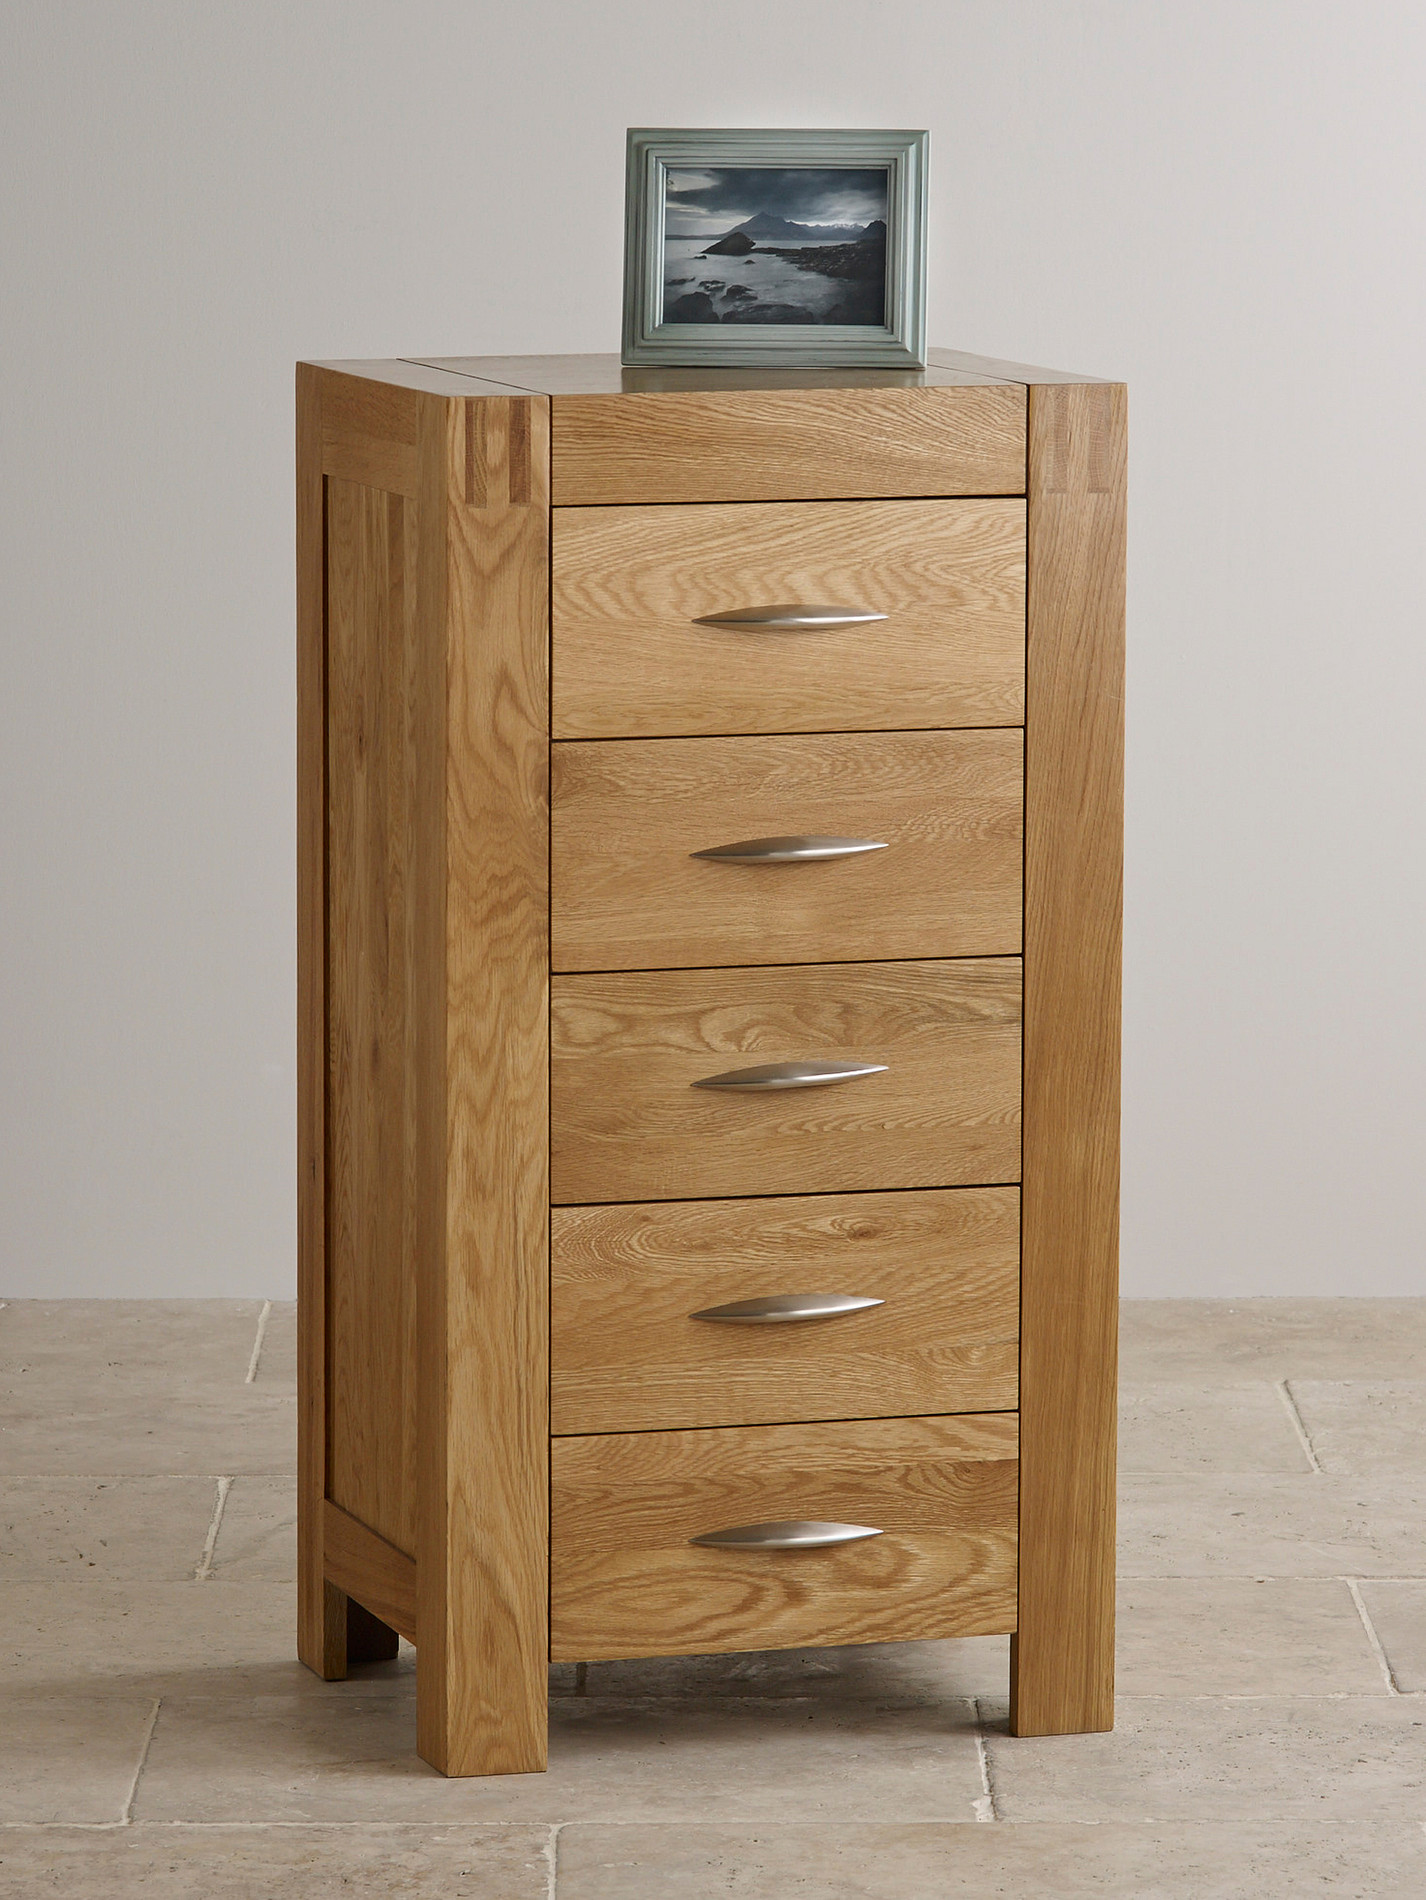 #6C492A Alto Natural Solid Oak 5 Drawer Tall Chest Bedroom Furniture with 1426x1900 px of Most Effective Tall Dresser Drawers Bedroom Furniture 19001426 wallpaper @ avoidforclosure.info